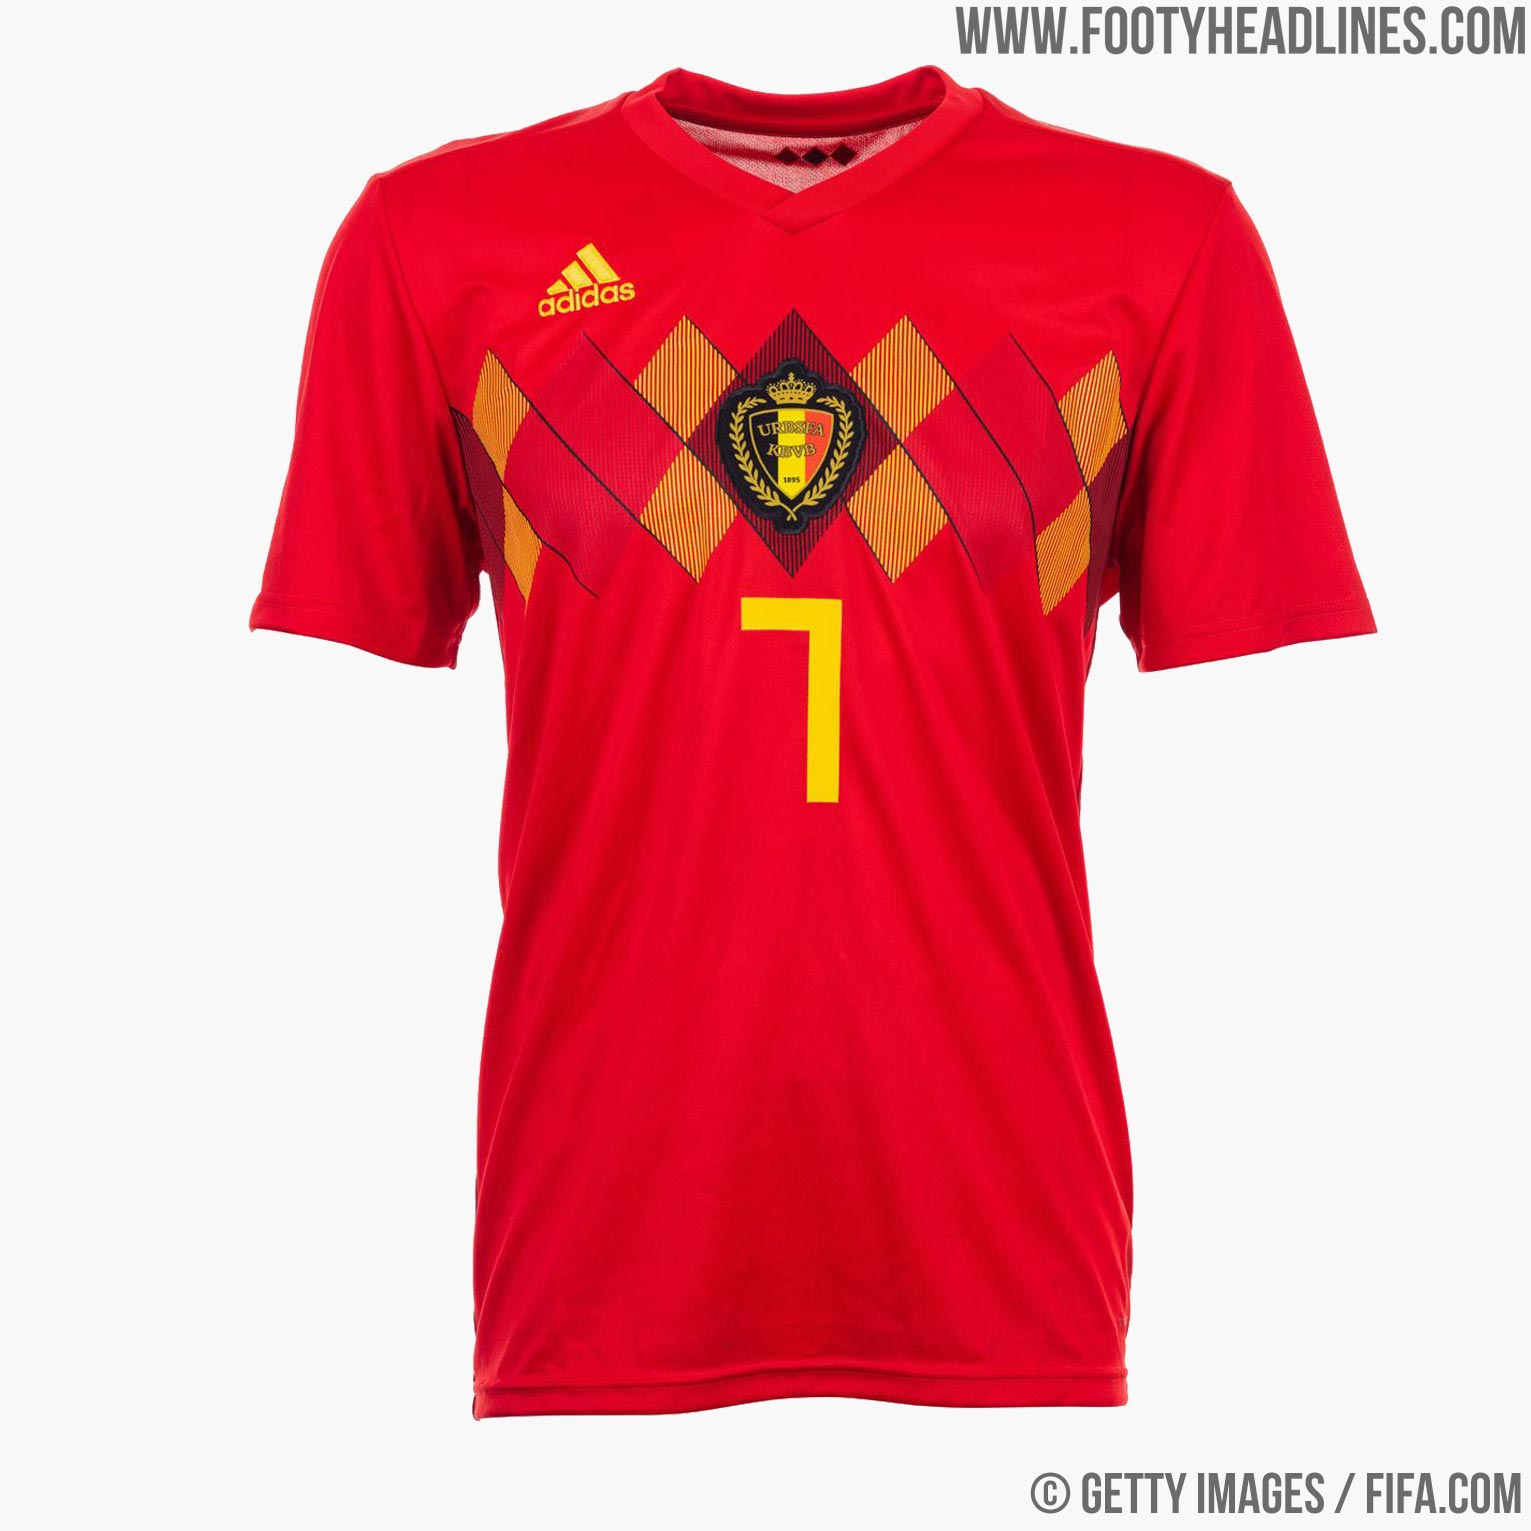 Belgium 2018 World Cup Home Kit Buy now. Free worldwide delivery on all  orders dbda68e95